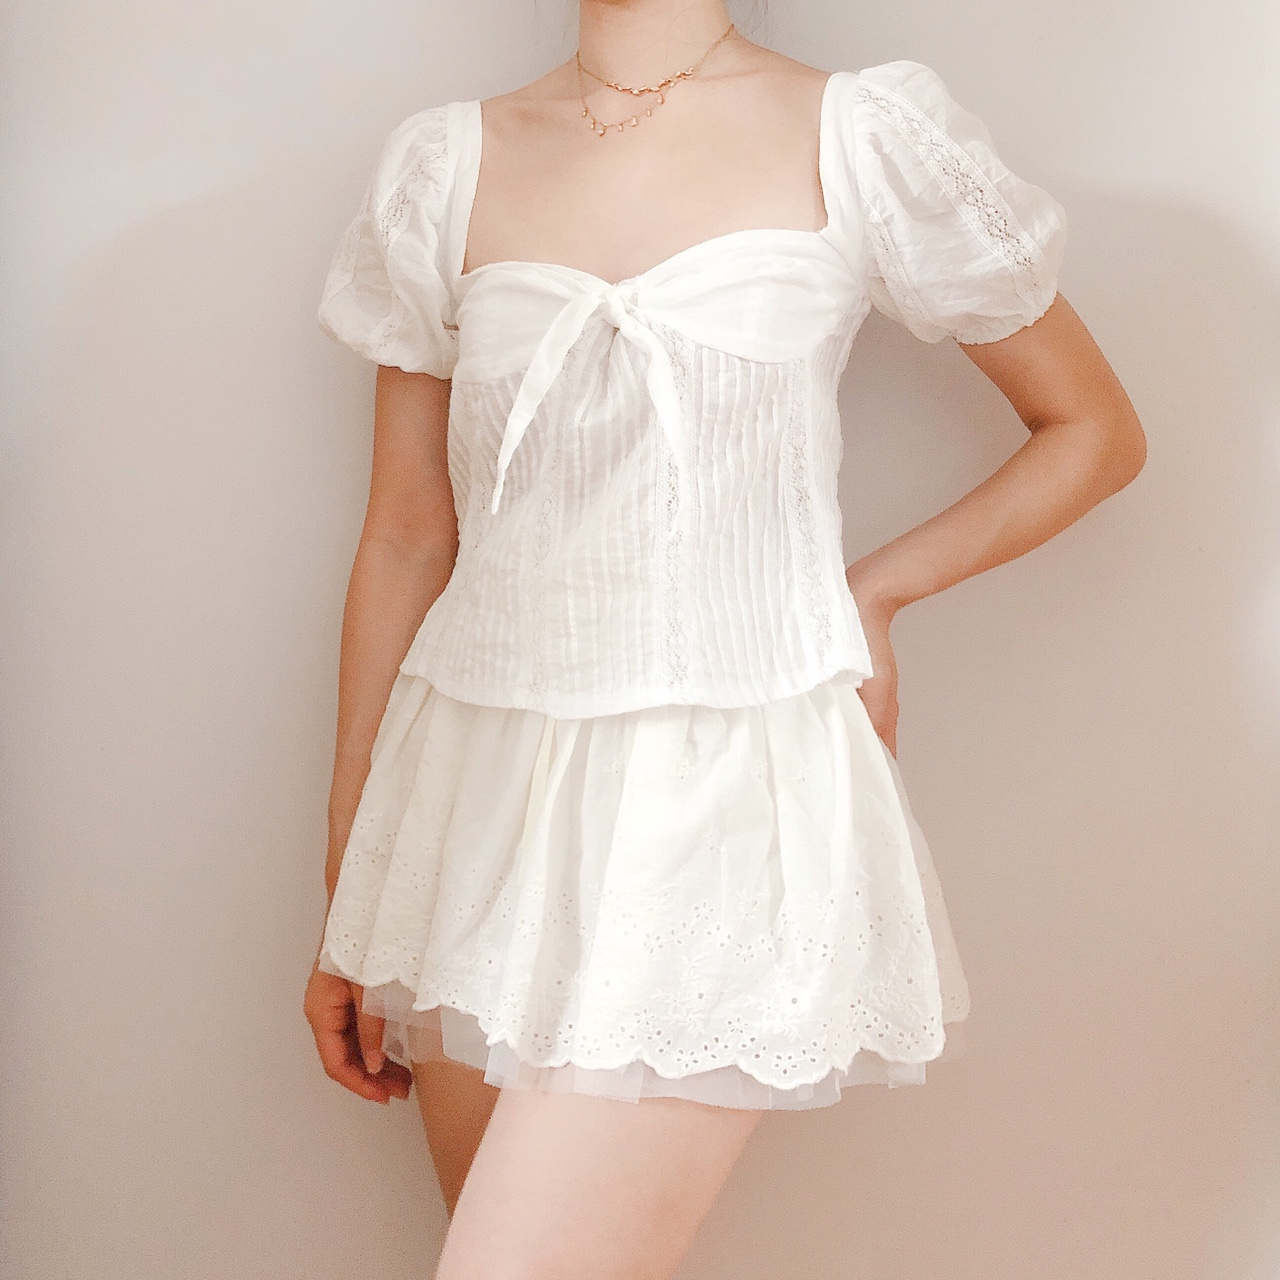 White Lace Sweetheart Blouse ♡ Puff sleeves and tie